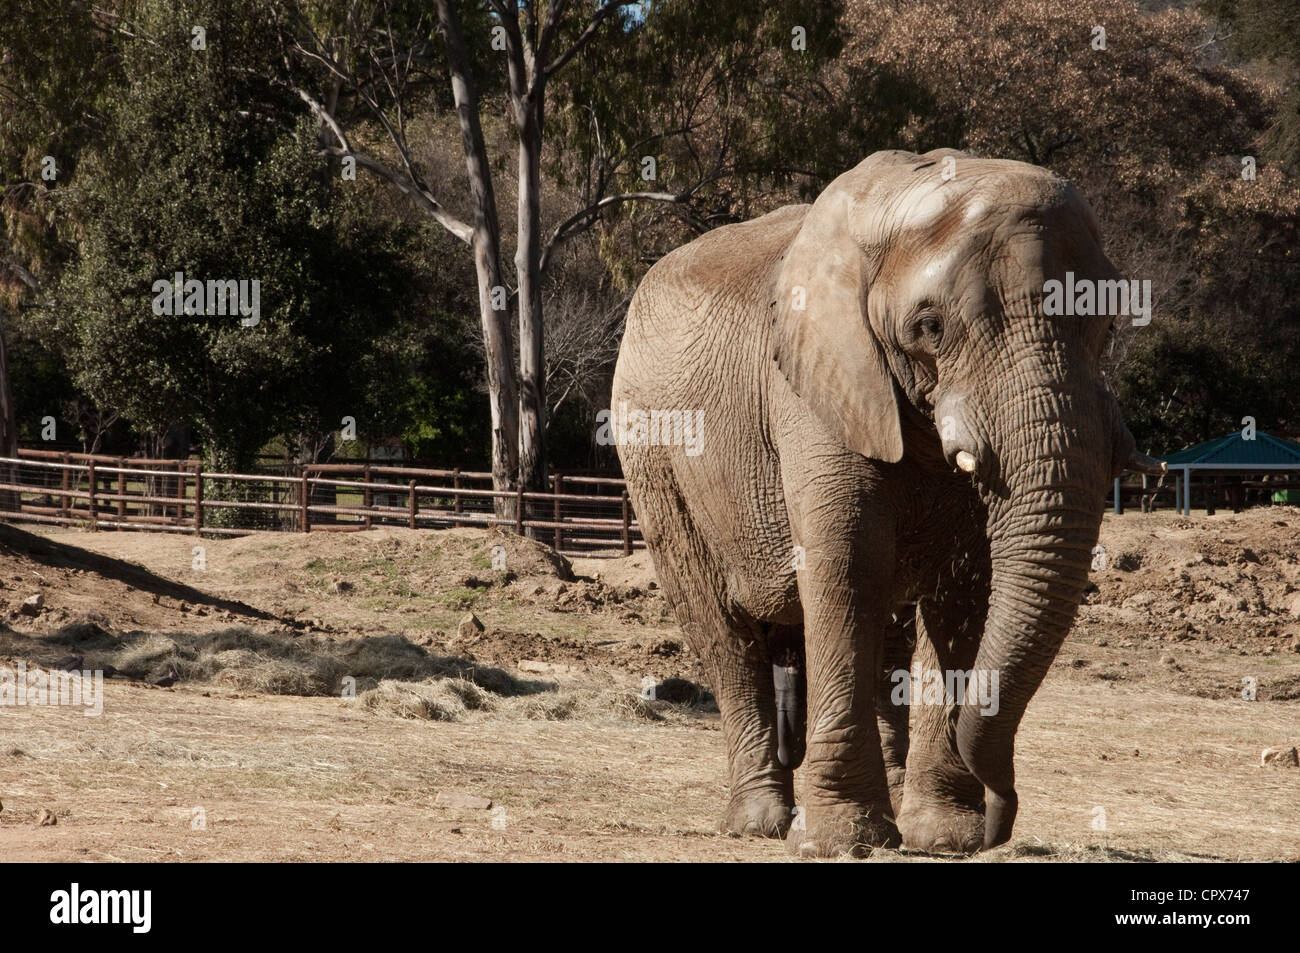 Landscape shot of an elephant walking - Stock Image